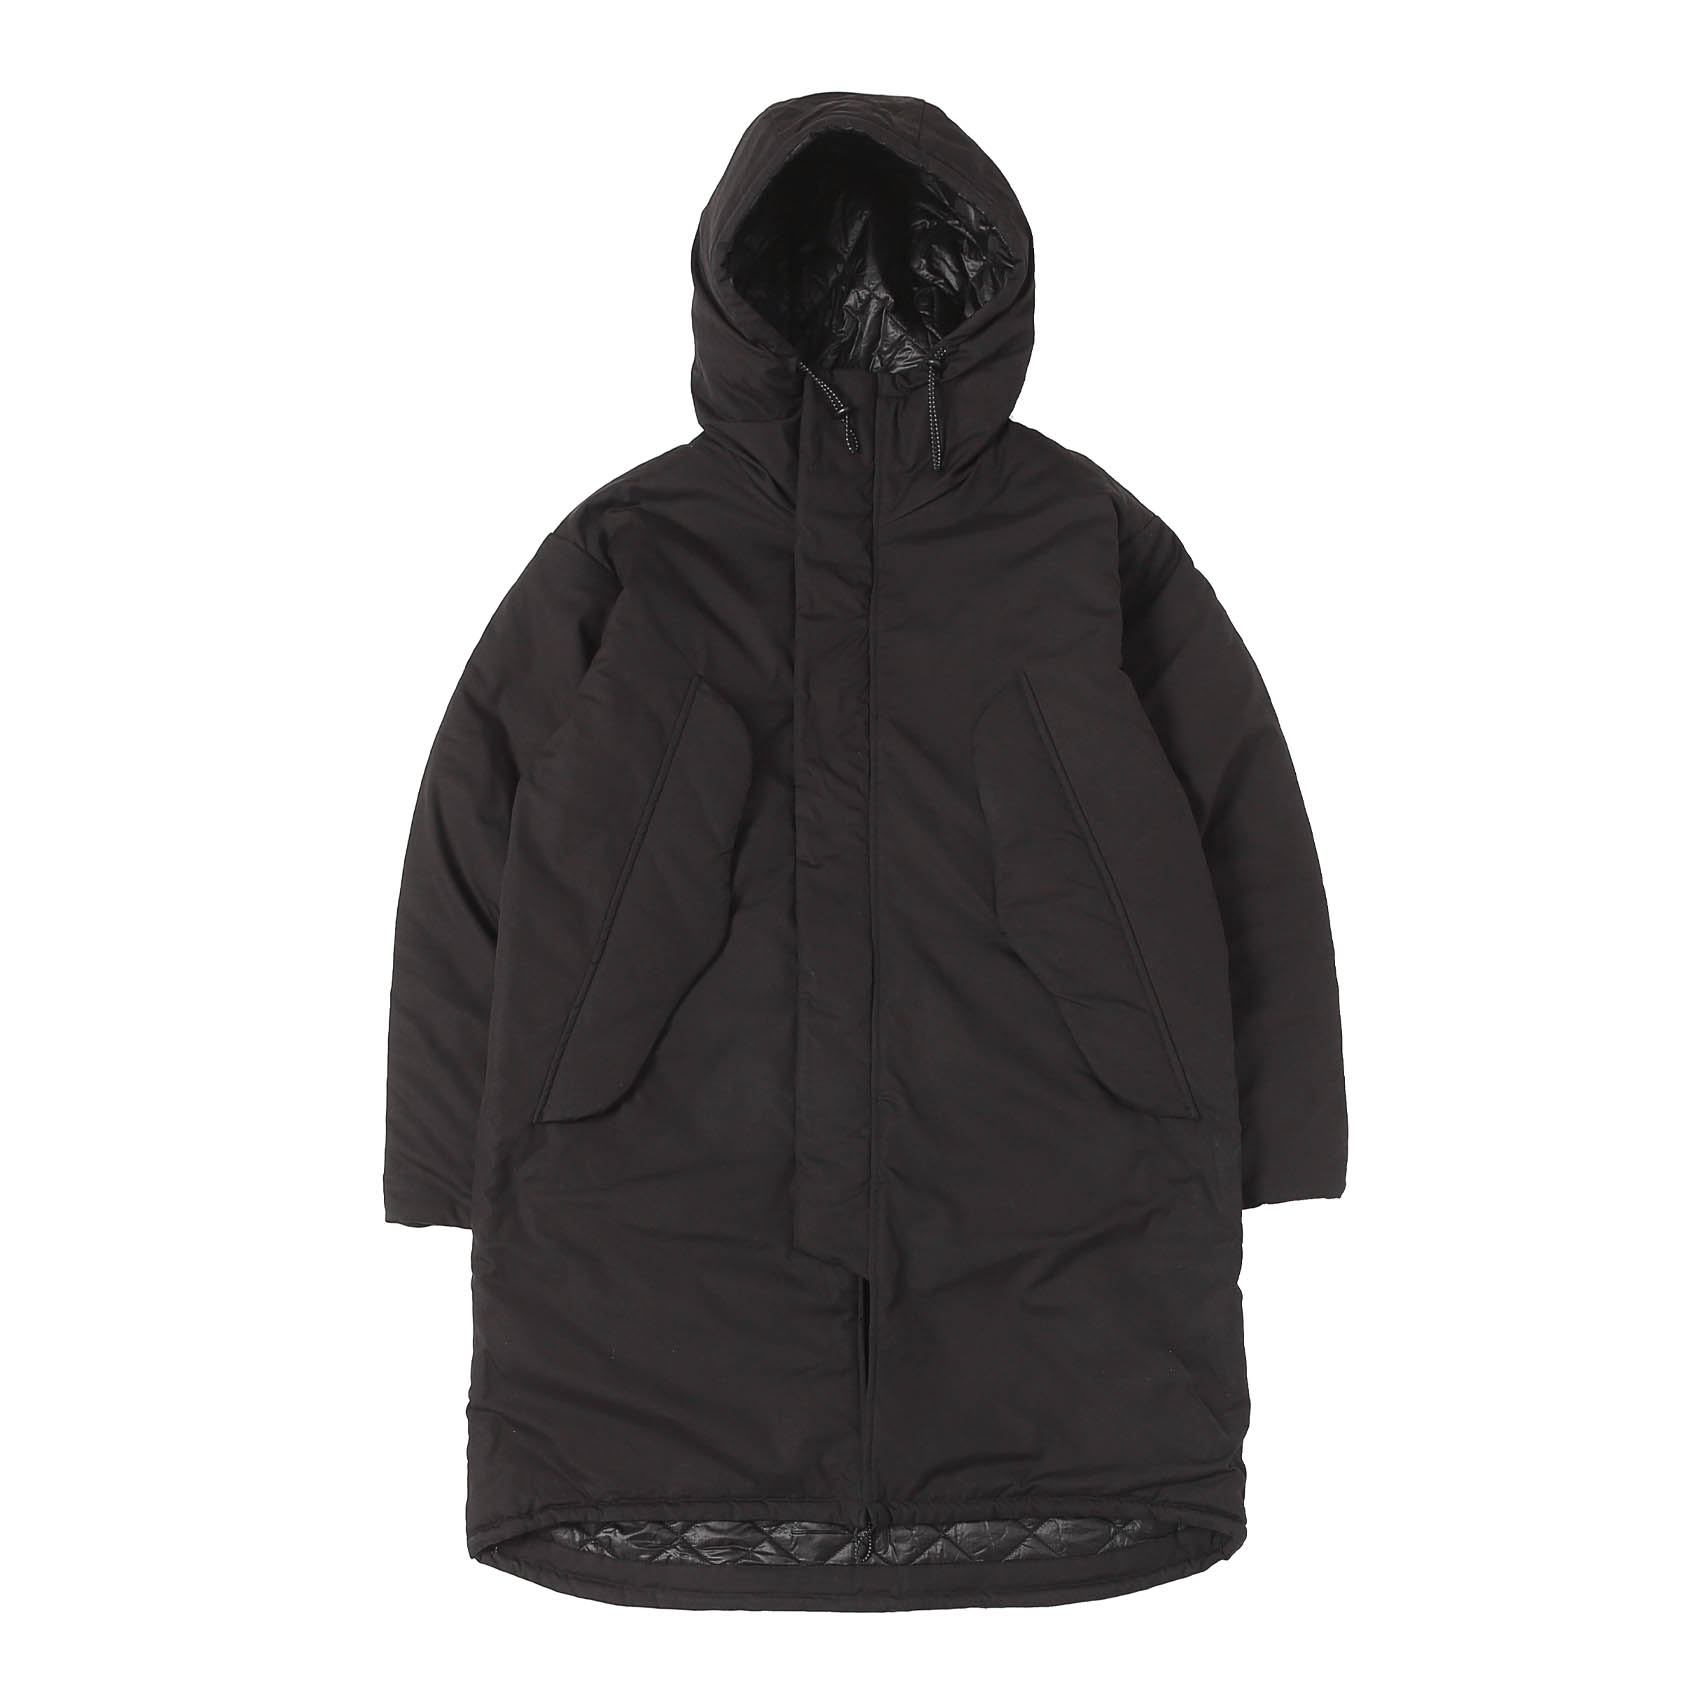 HARRY'S COAT - BLACK